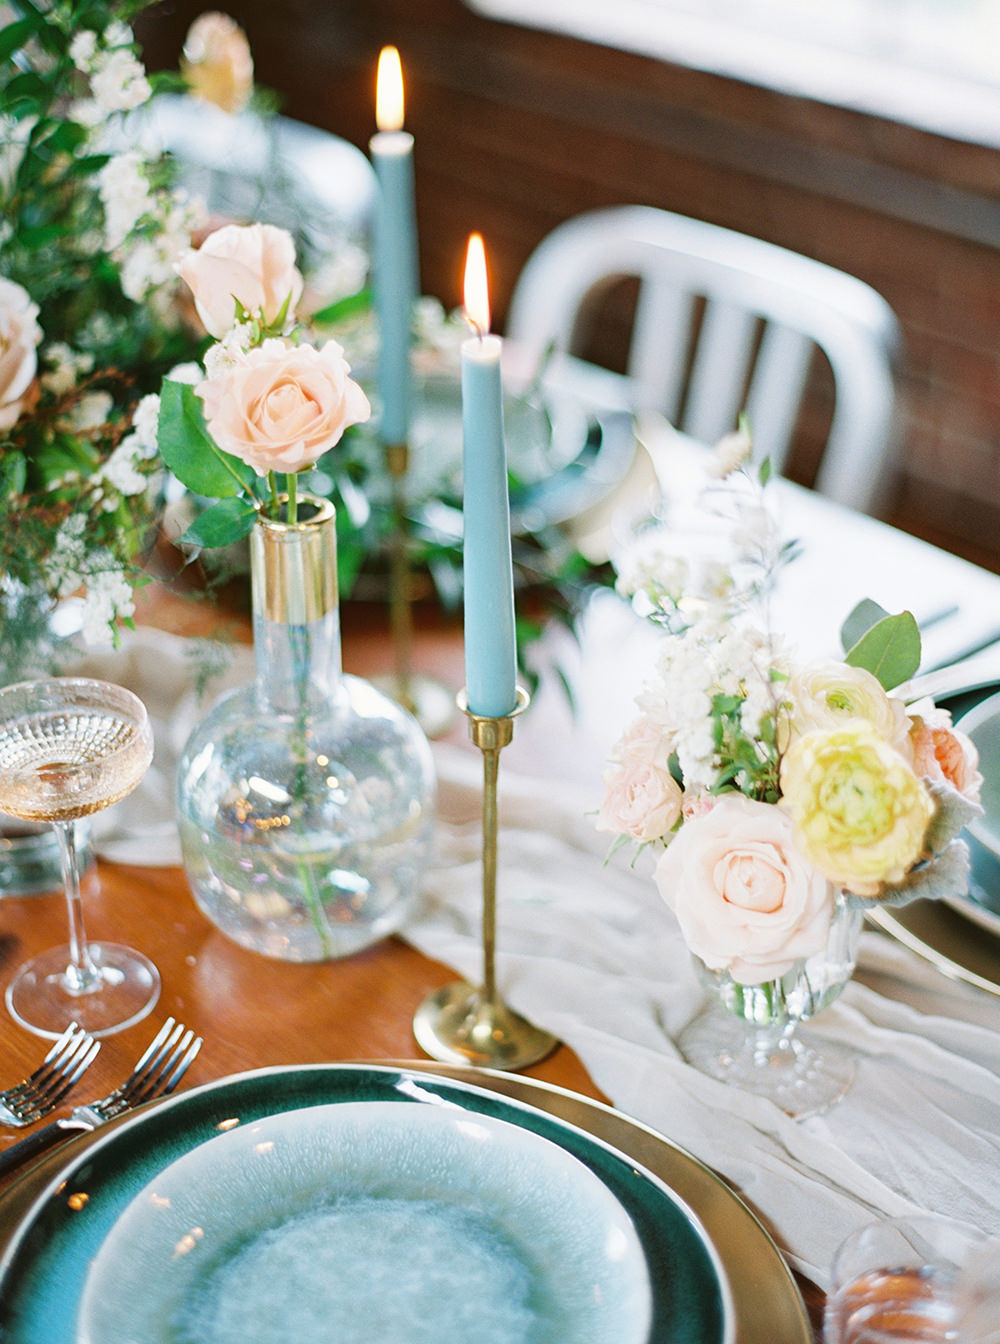 wedding tablescapes - photo by Photos by Heart https://ruffledblog.com/downtown-birmingham-spring-wedding-inspiration